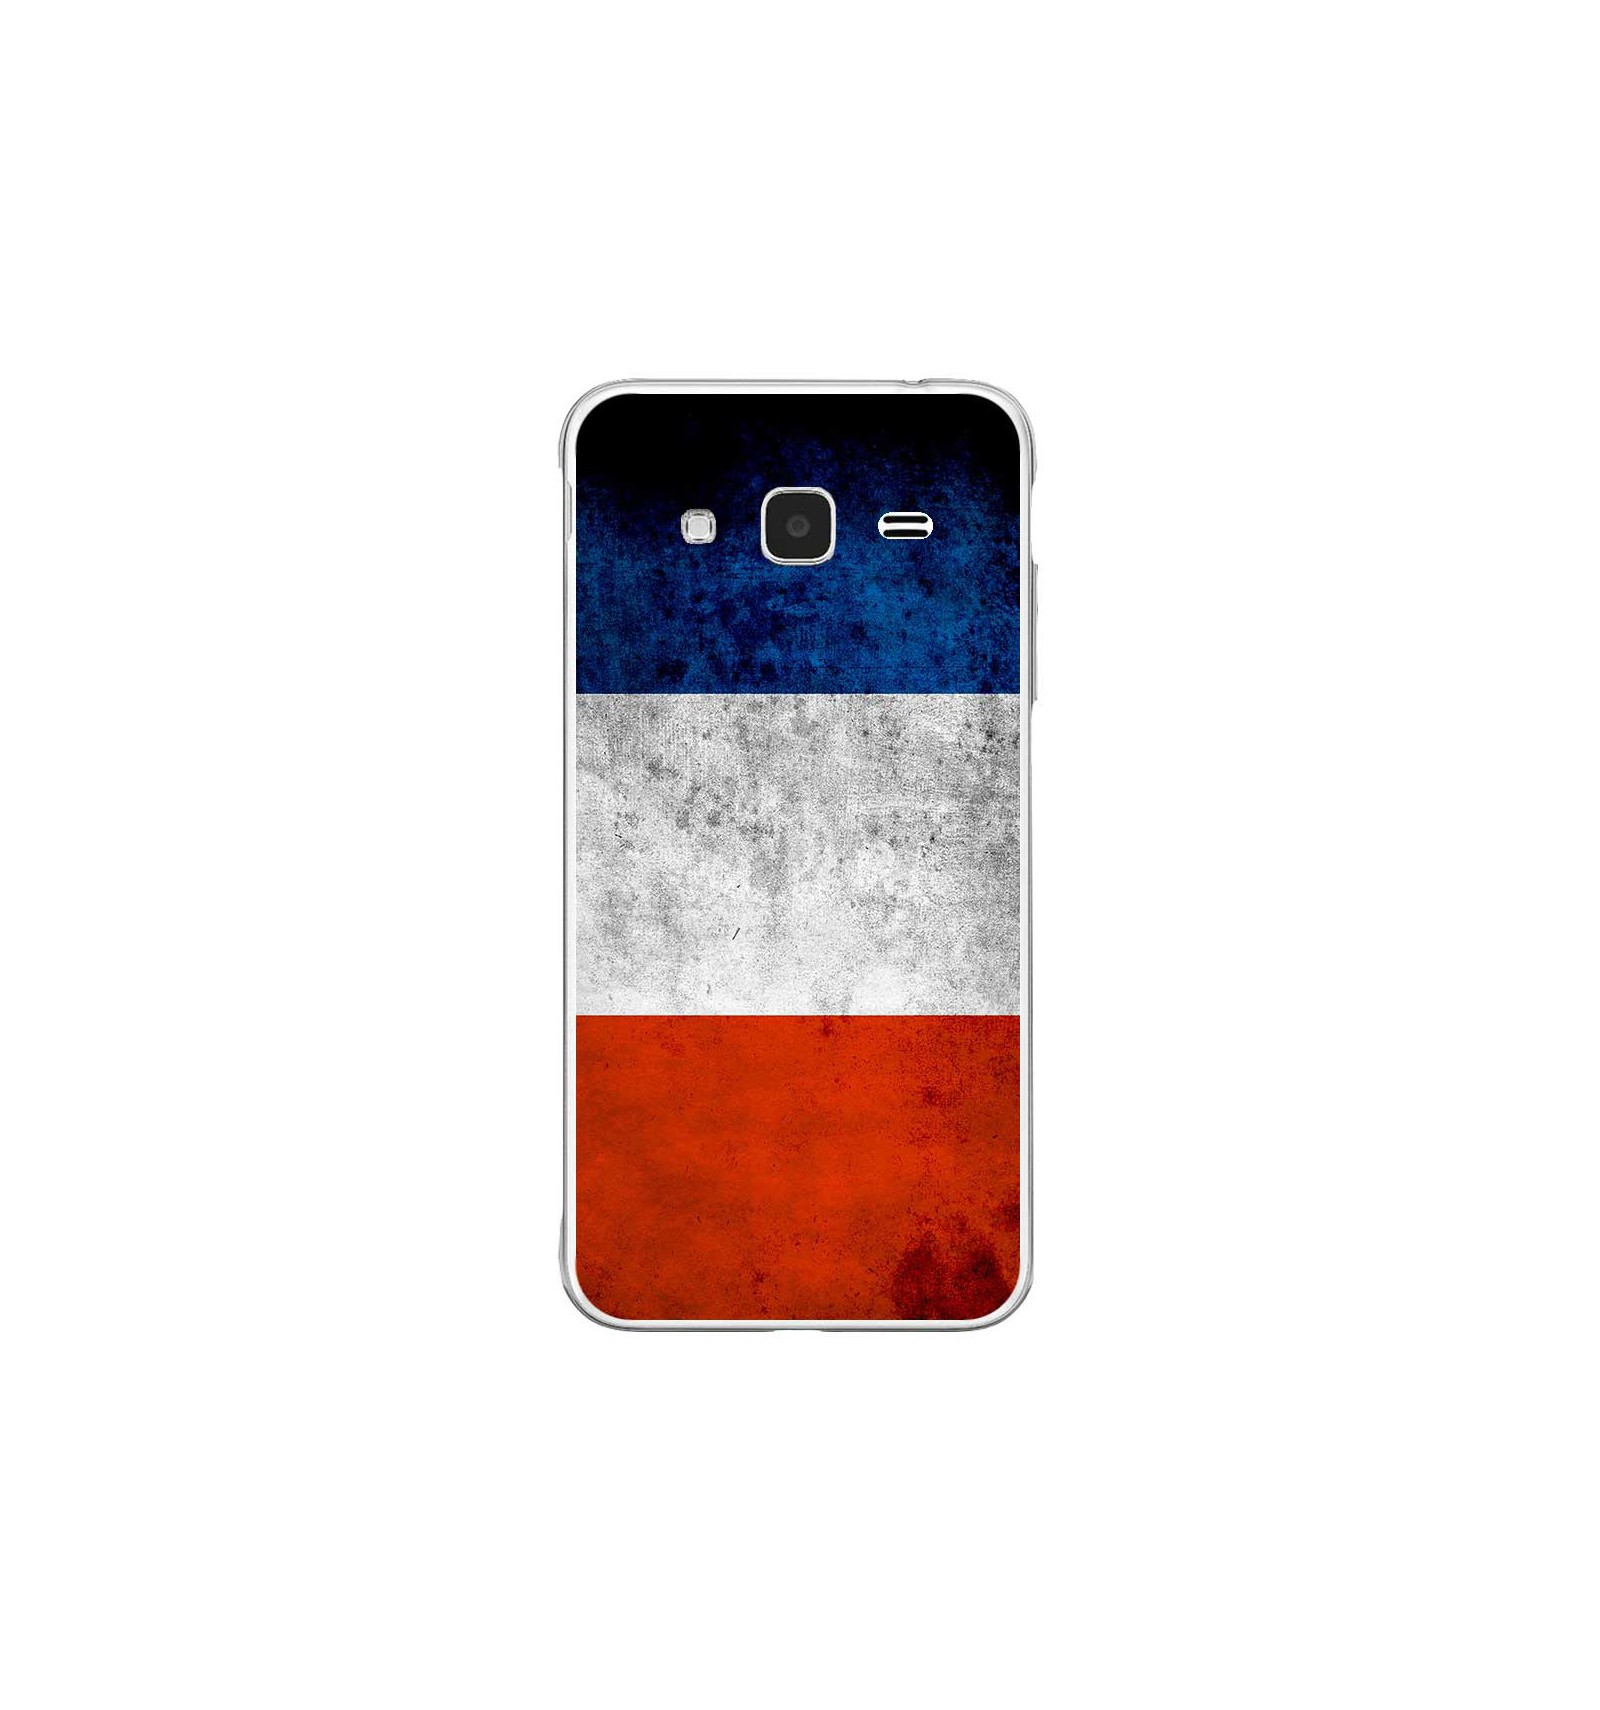 coque en silicone samsung galaxy j3 2016 drapeau france. Black Bedroom Furniture Sets. Home Design Ideas